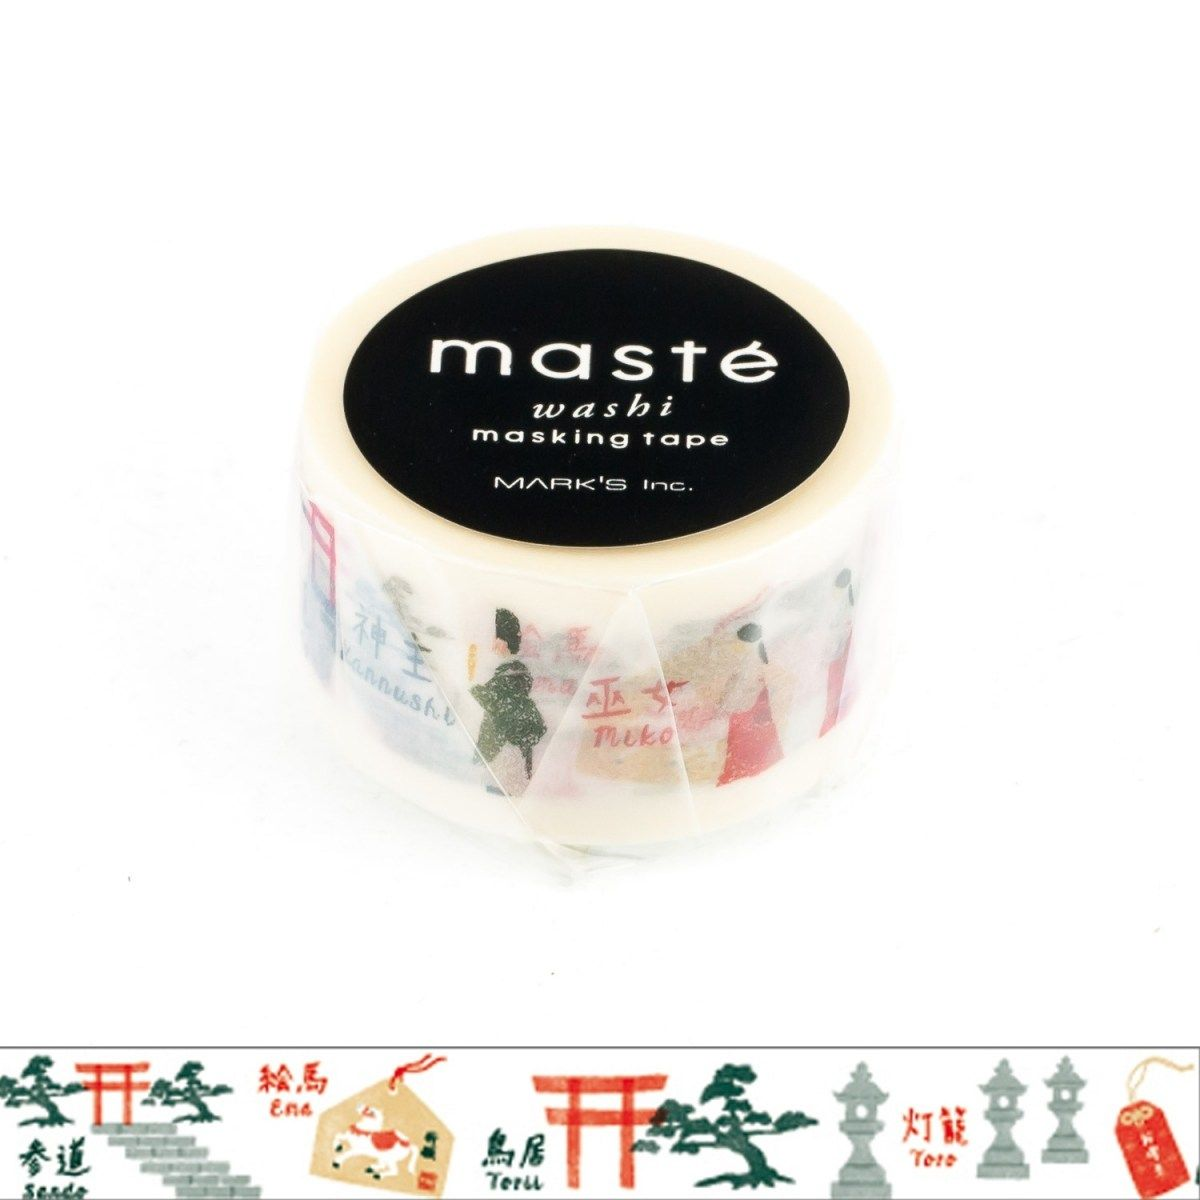 WASHI TAPE MASTÉ SHRINE